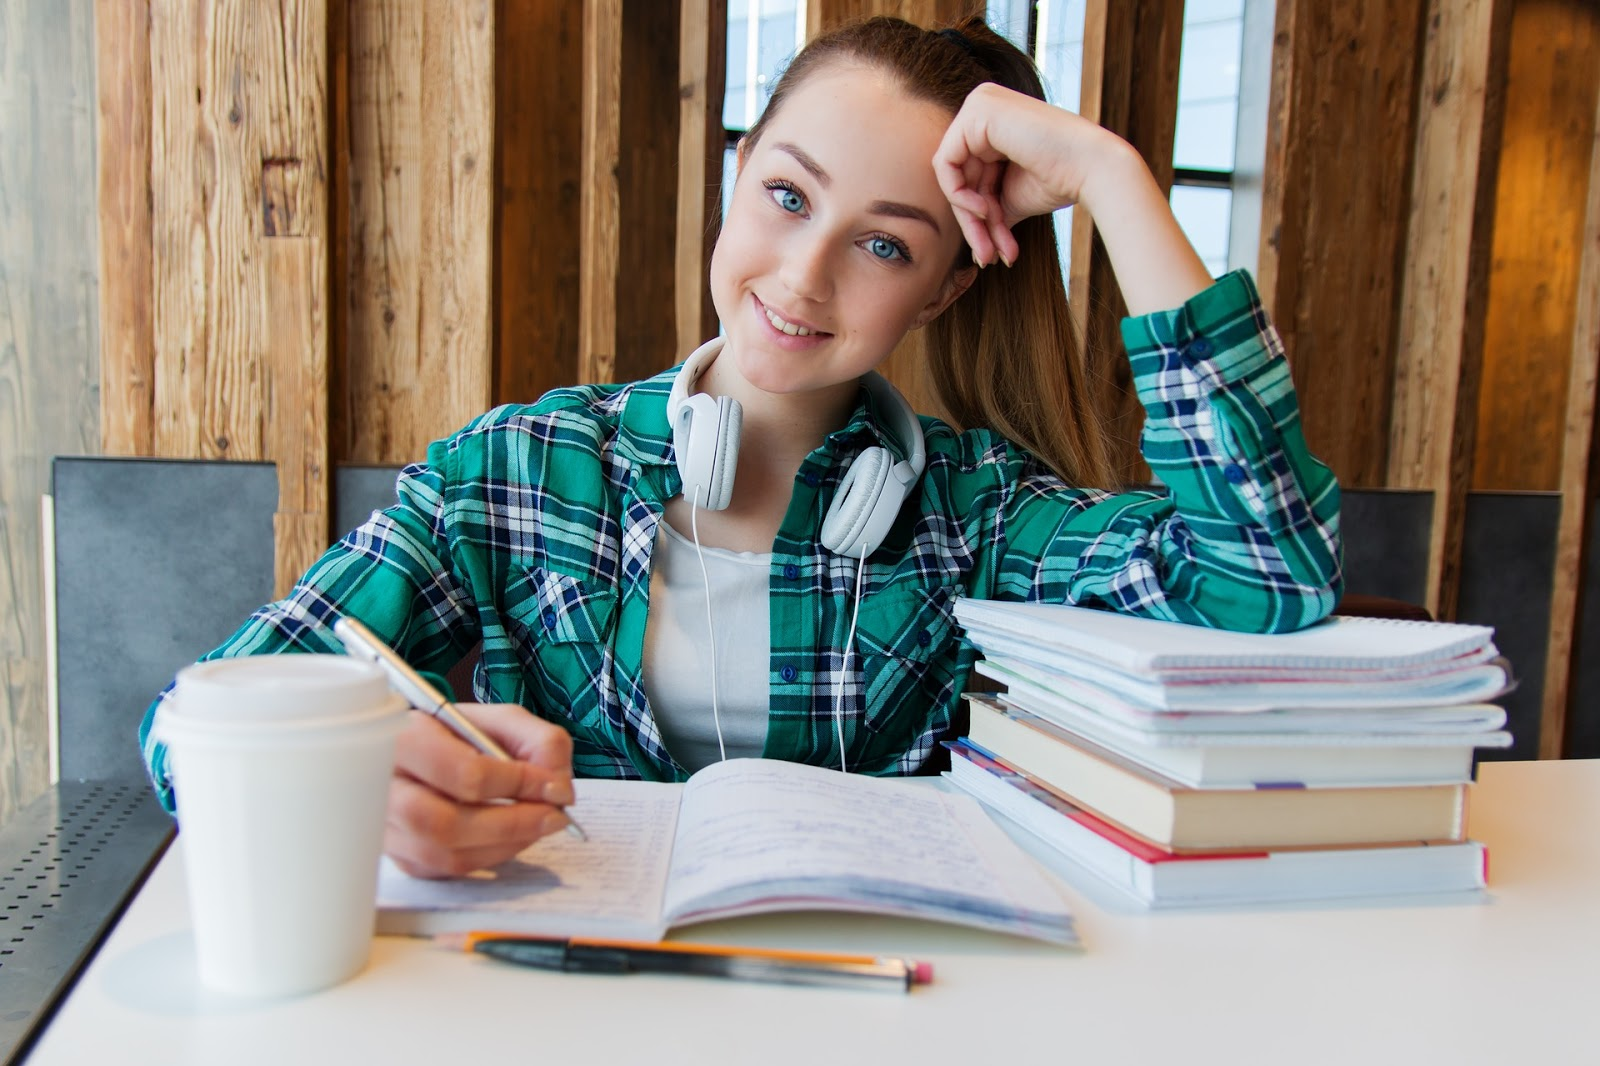 Top Tips And Advice For A Successful College Experience